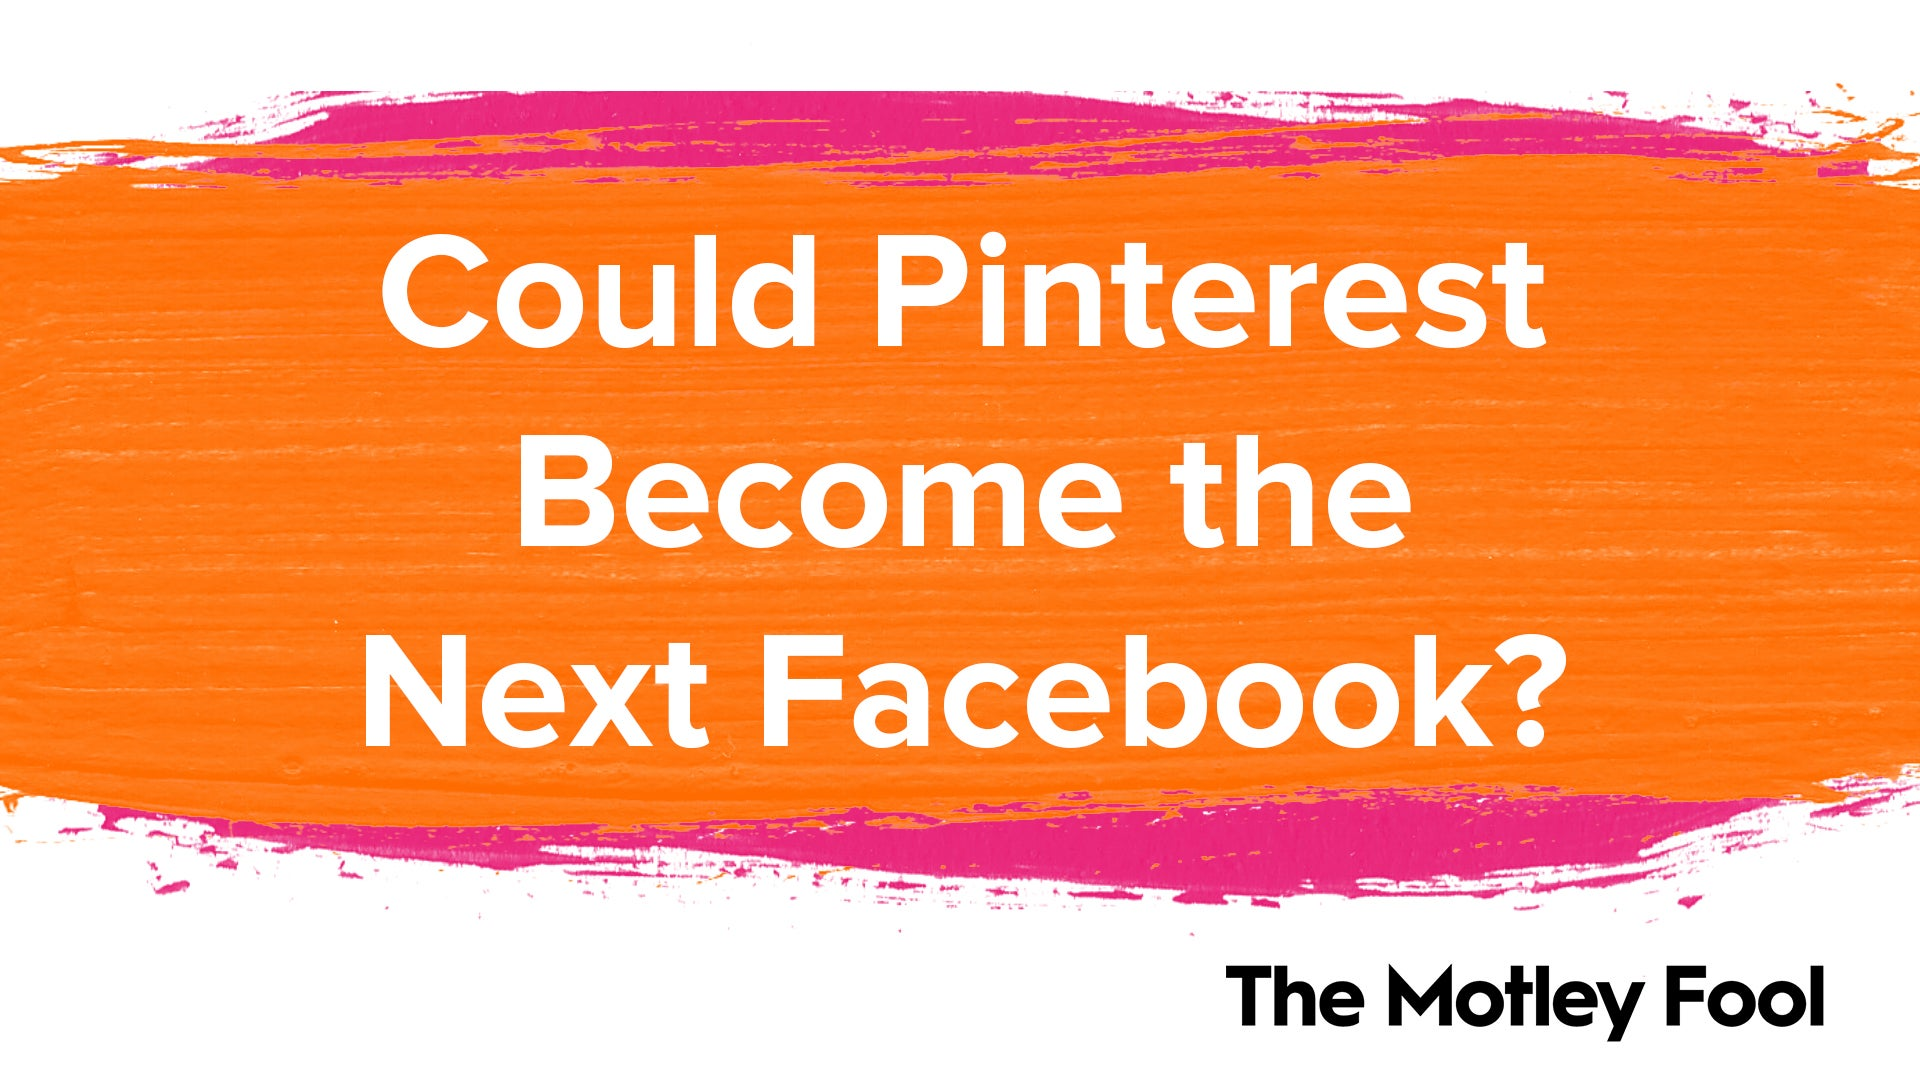 Could Pinterest Become the Next Facebook?